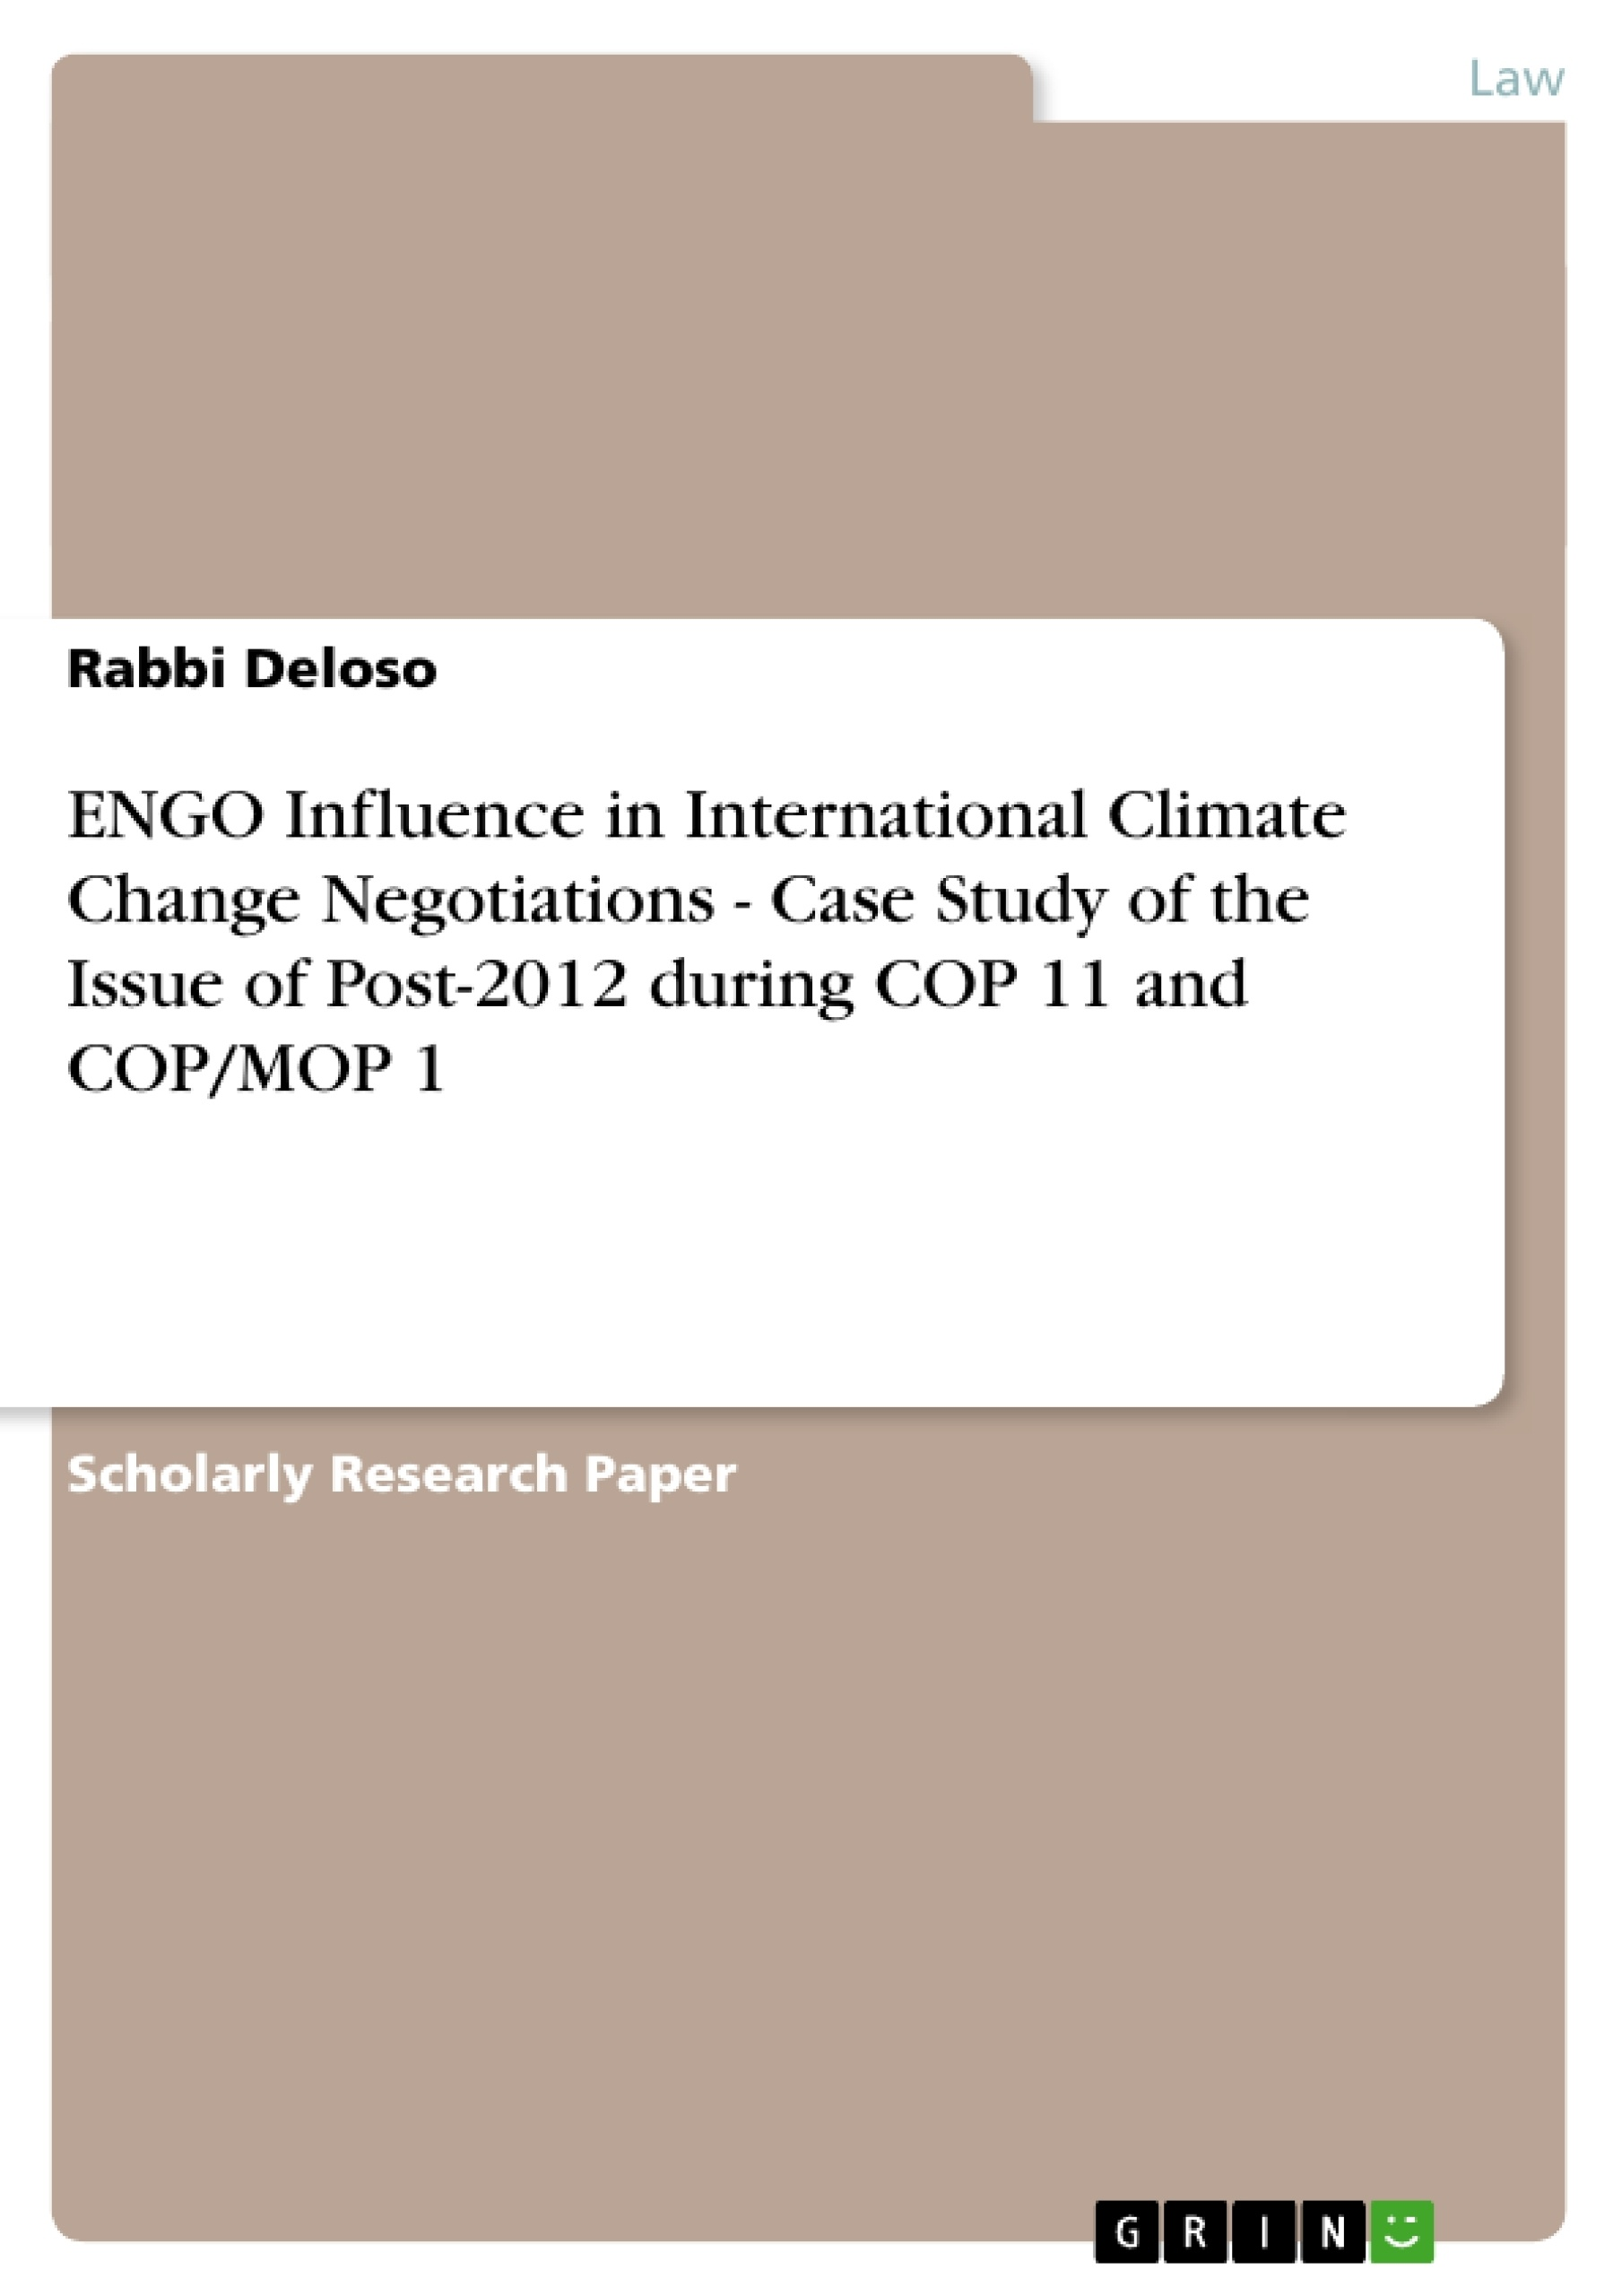 Title: ENGO Influence in International Climate Change Negotiations -  Case Study of the Issue of Post-2012 during COP 11 and COP/MOP 1